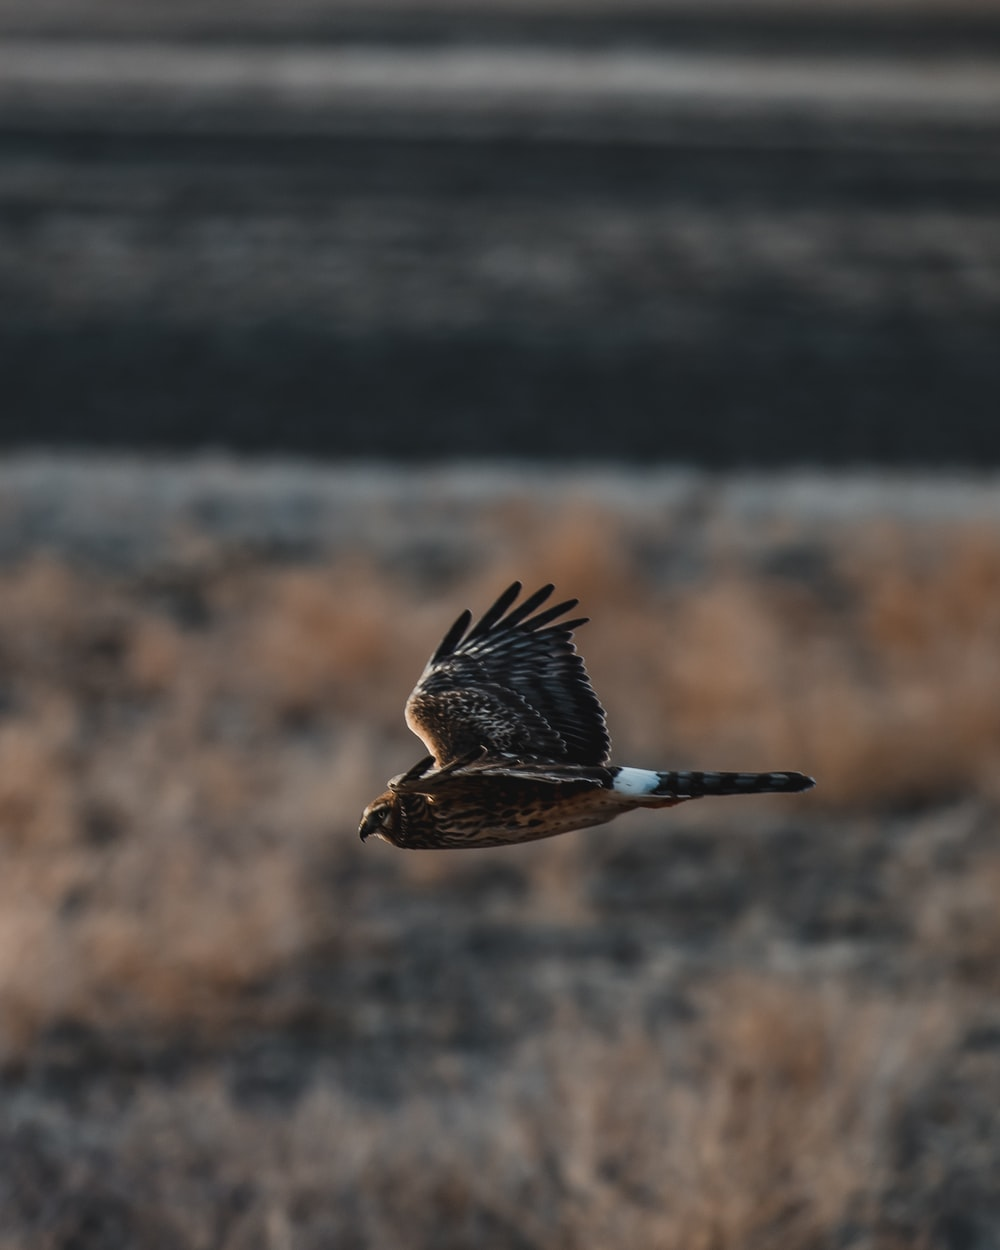 brown and black bird flying during daytime